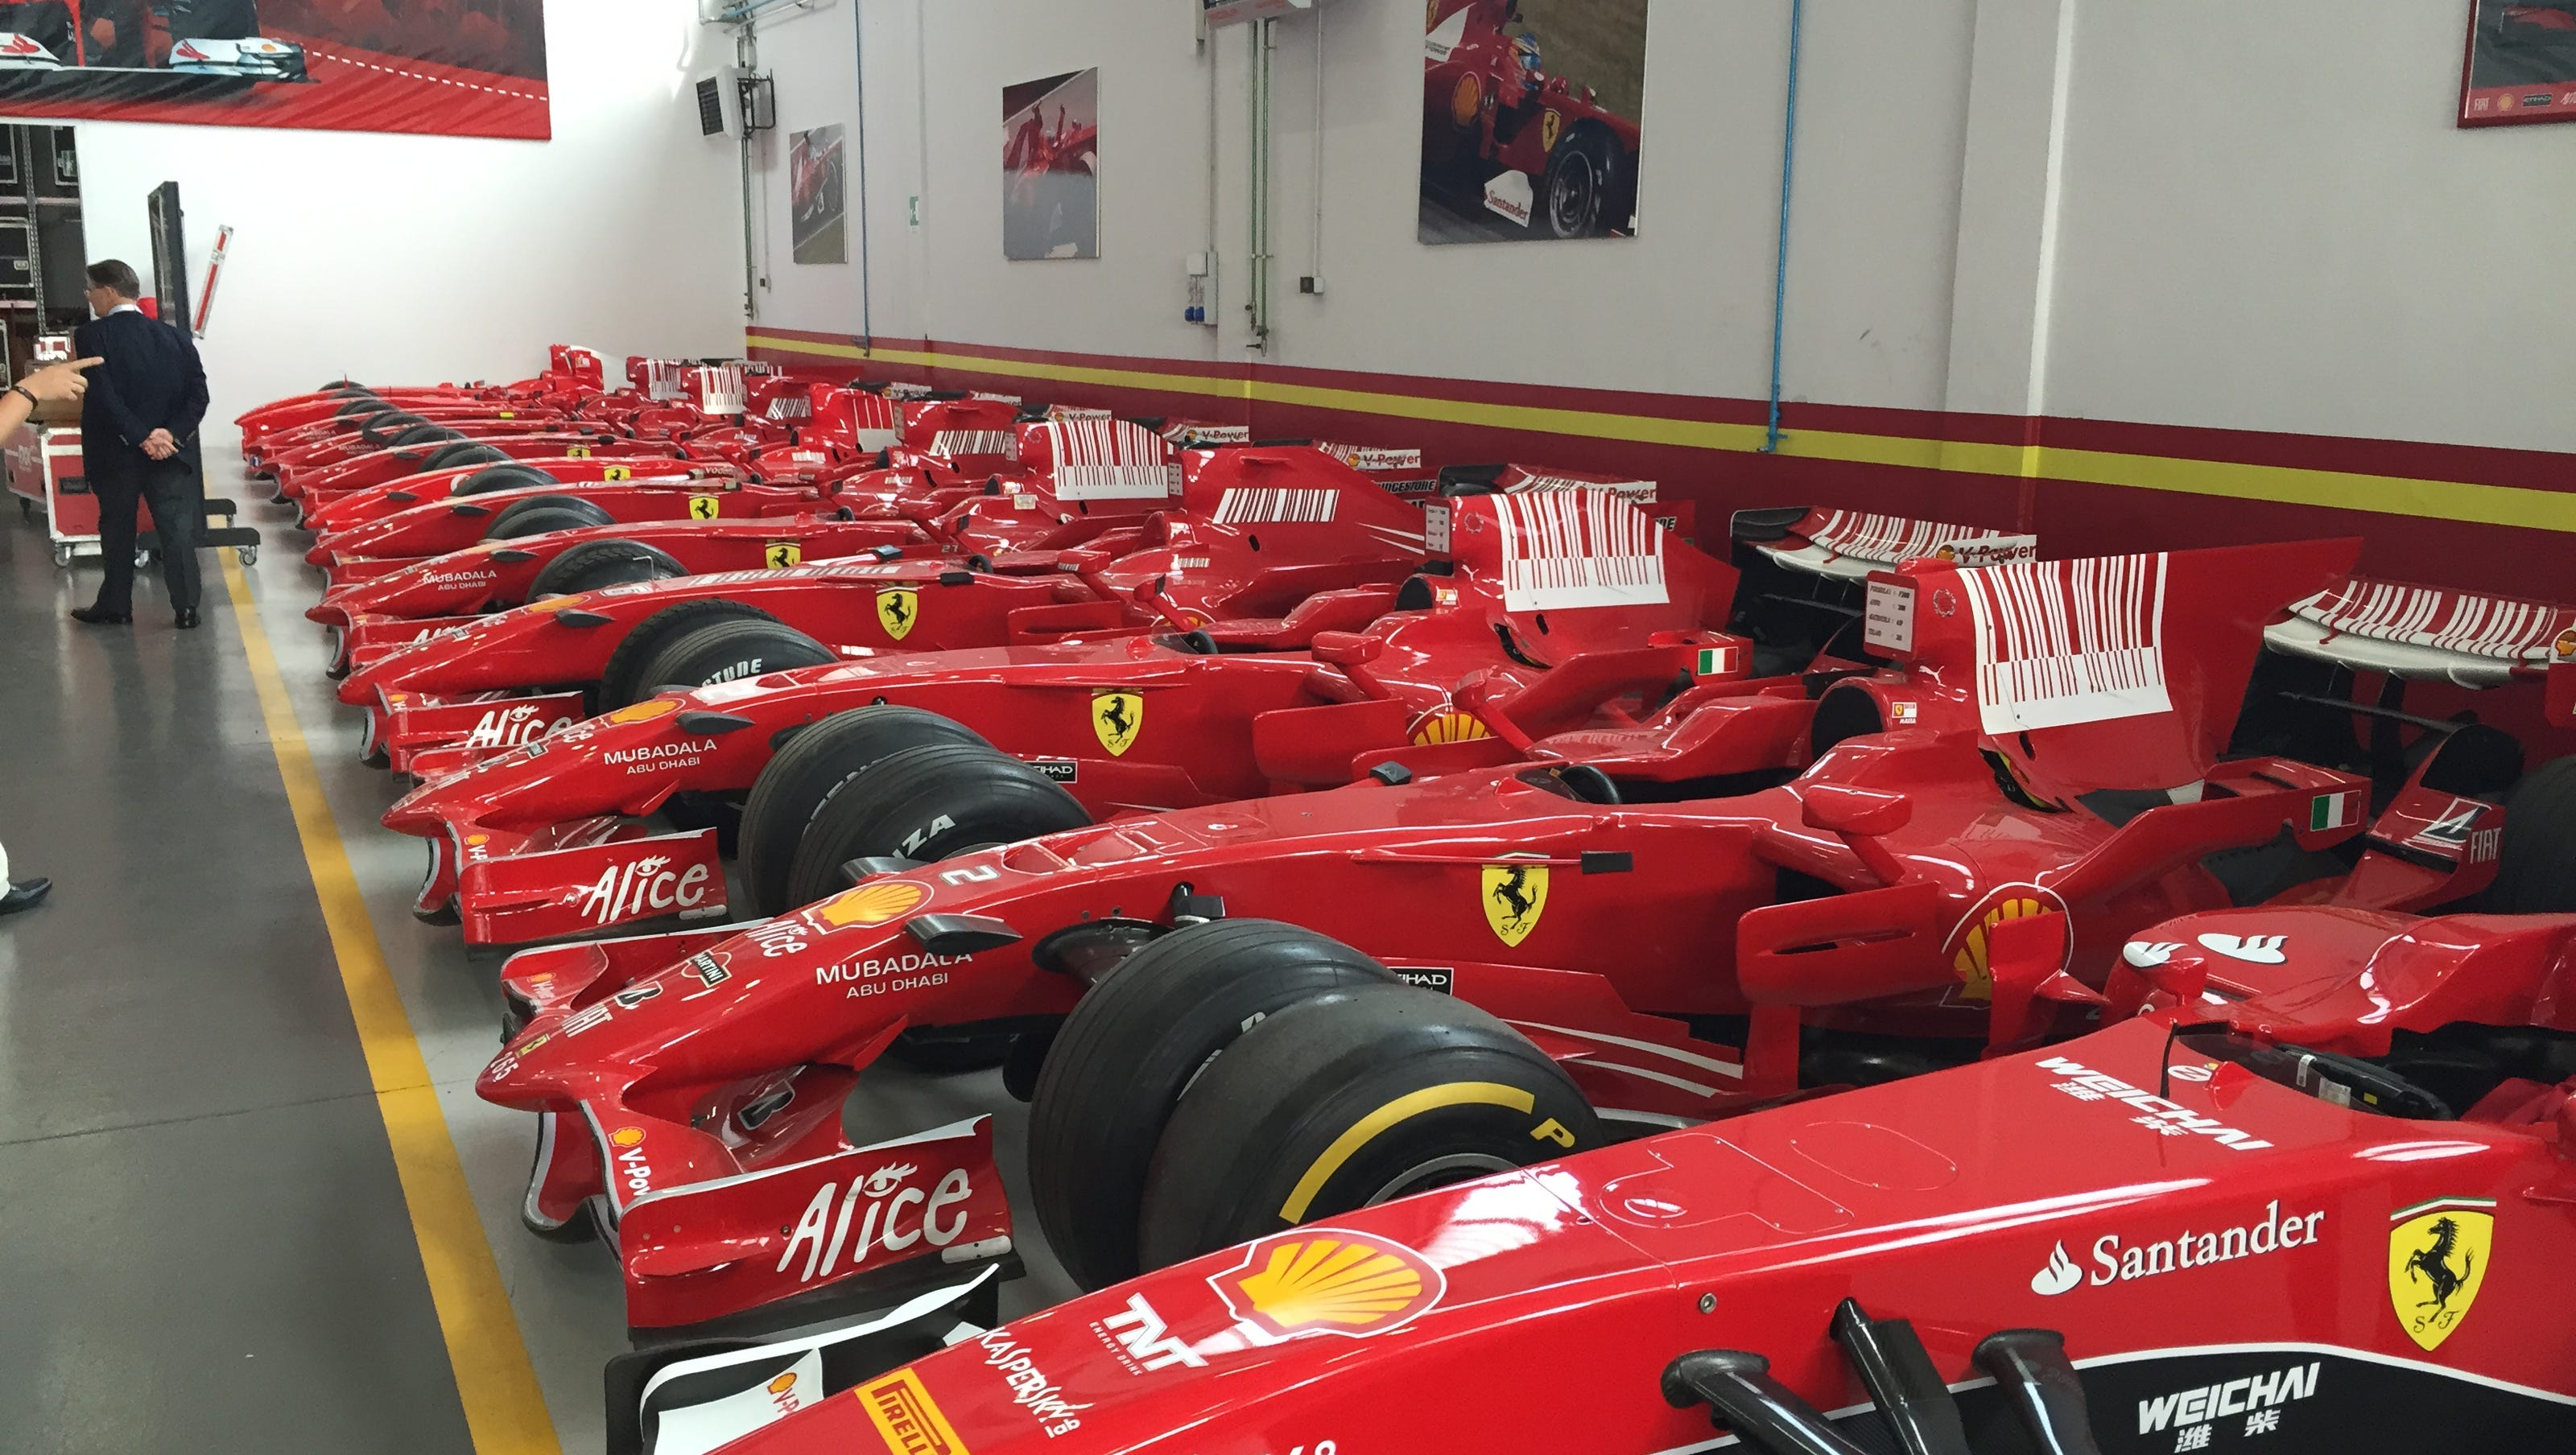 Ferrari S Manufacturing Campus Is Unlike Any Typical Assembly Plant